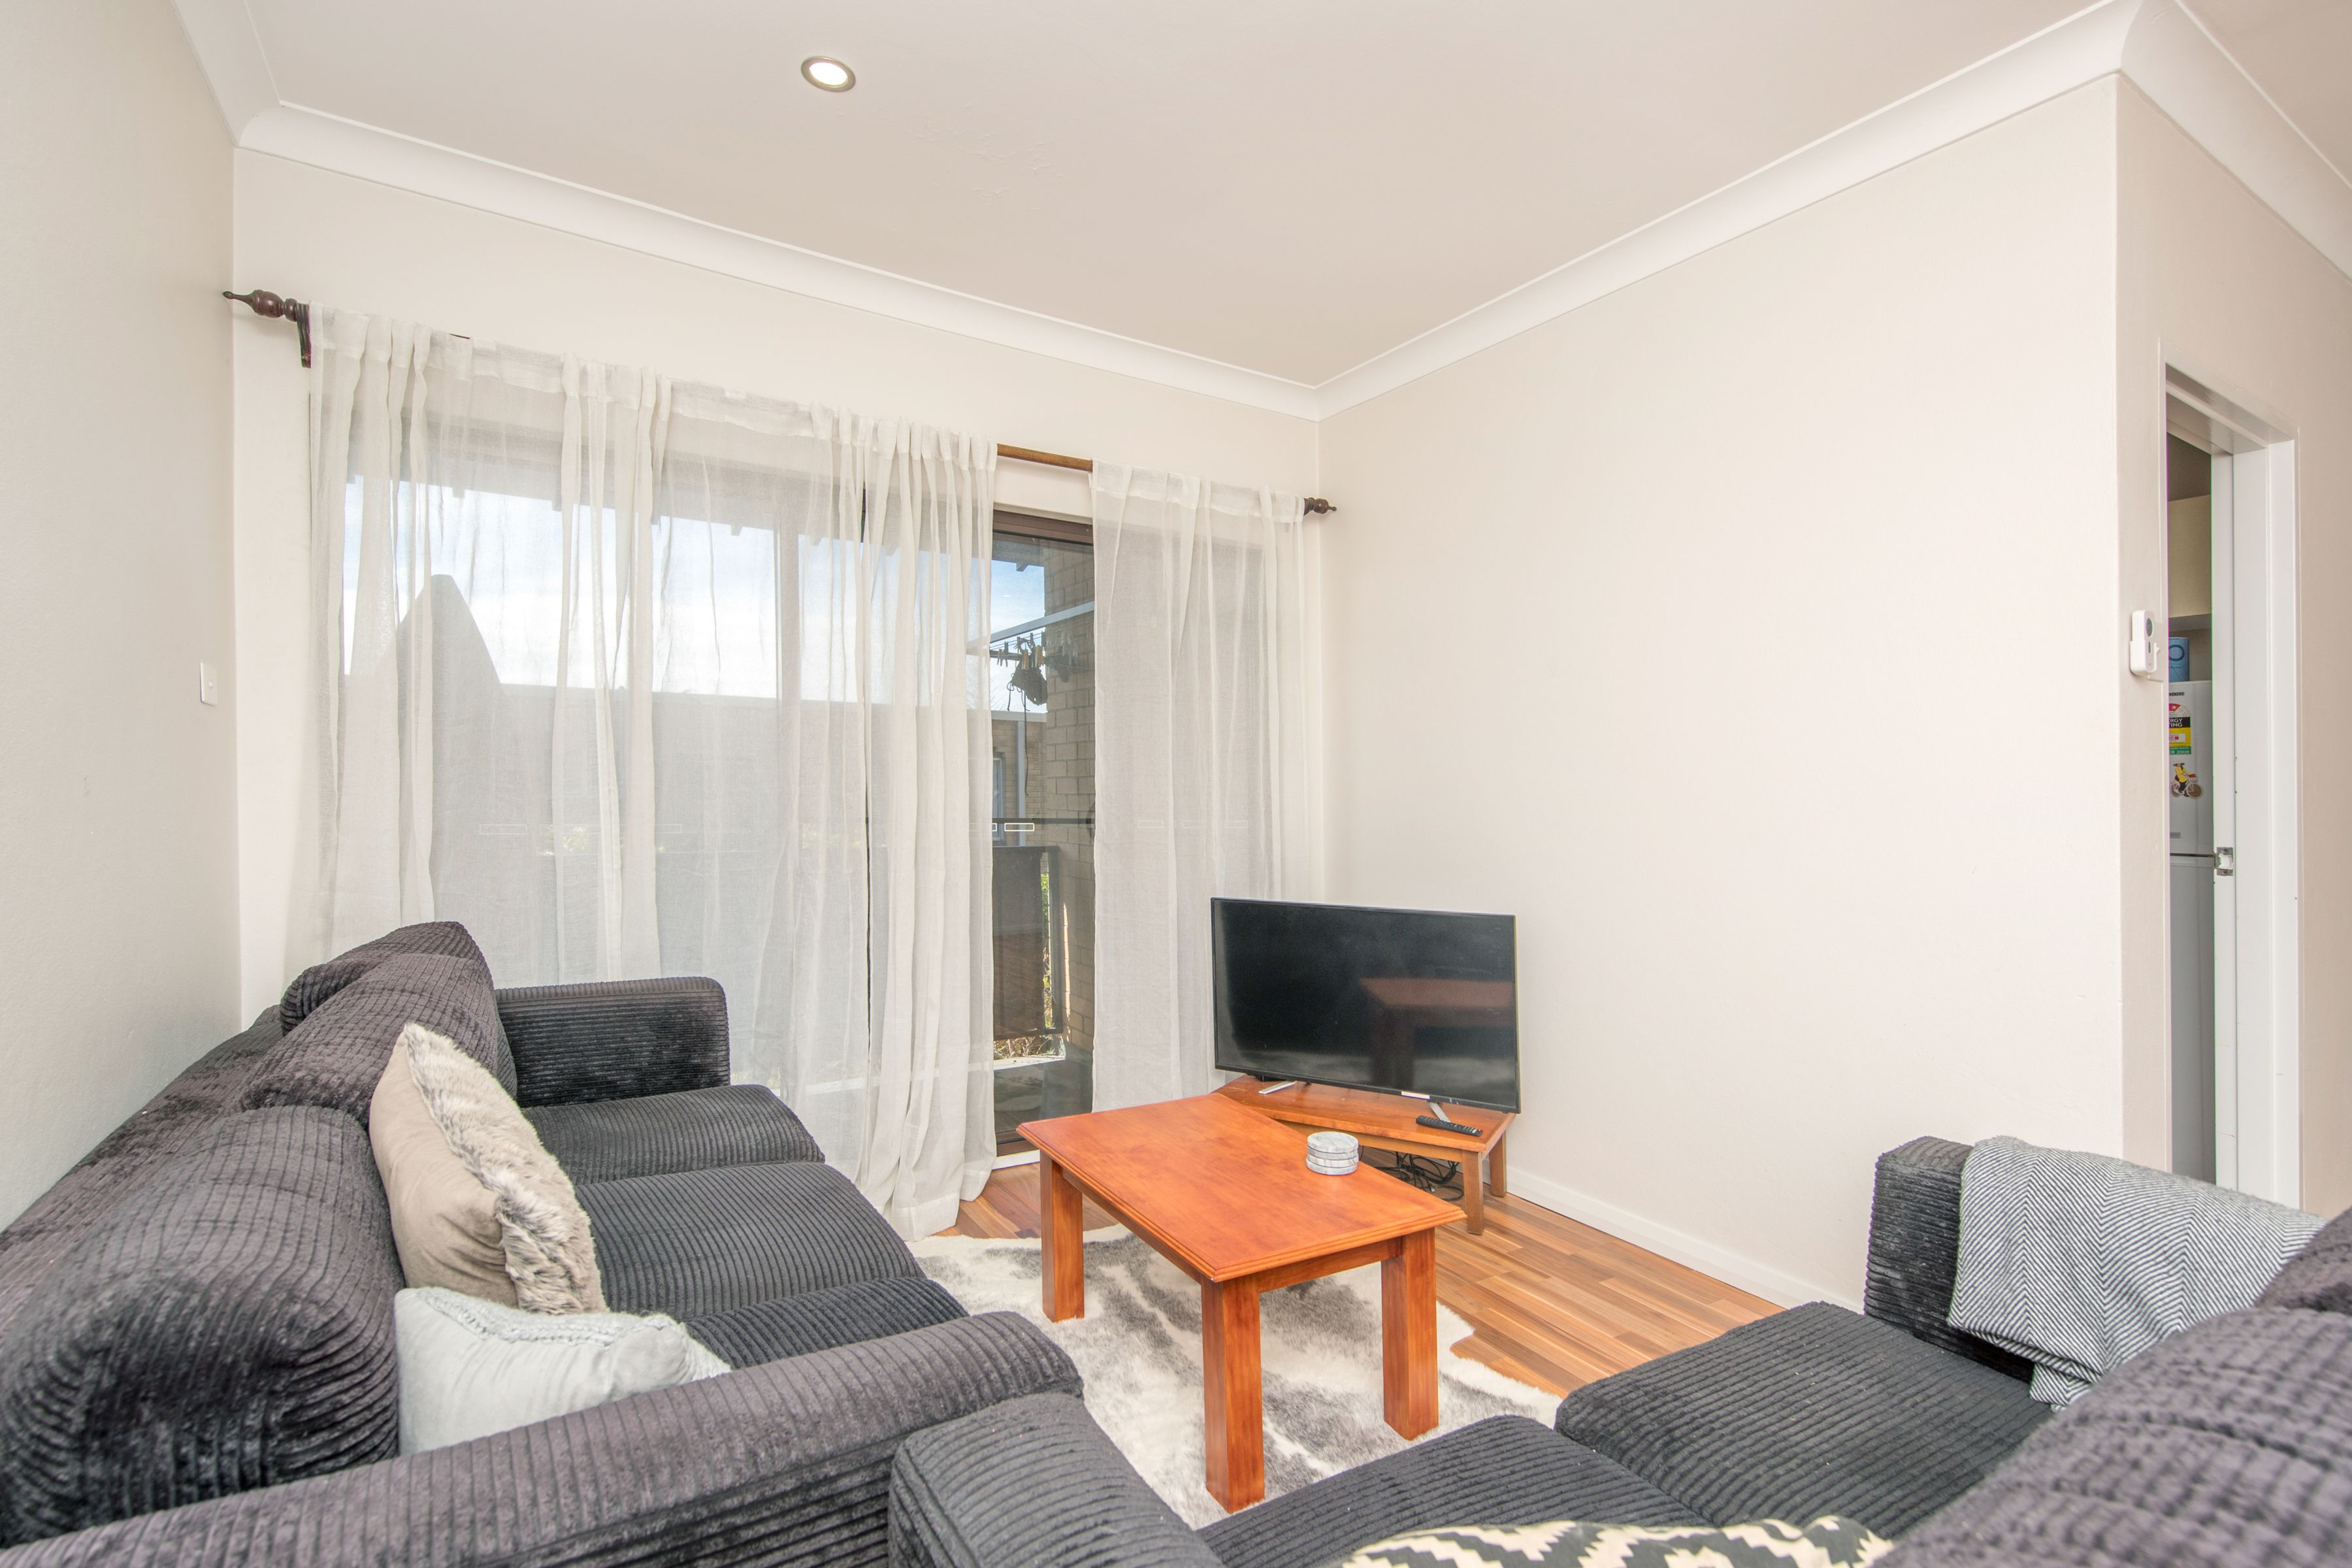 3/52 Wilton Street, Merewether